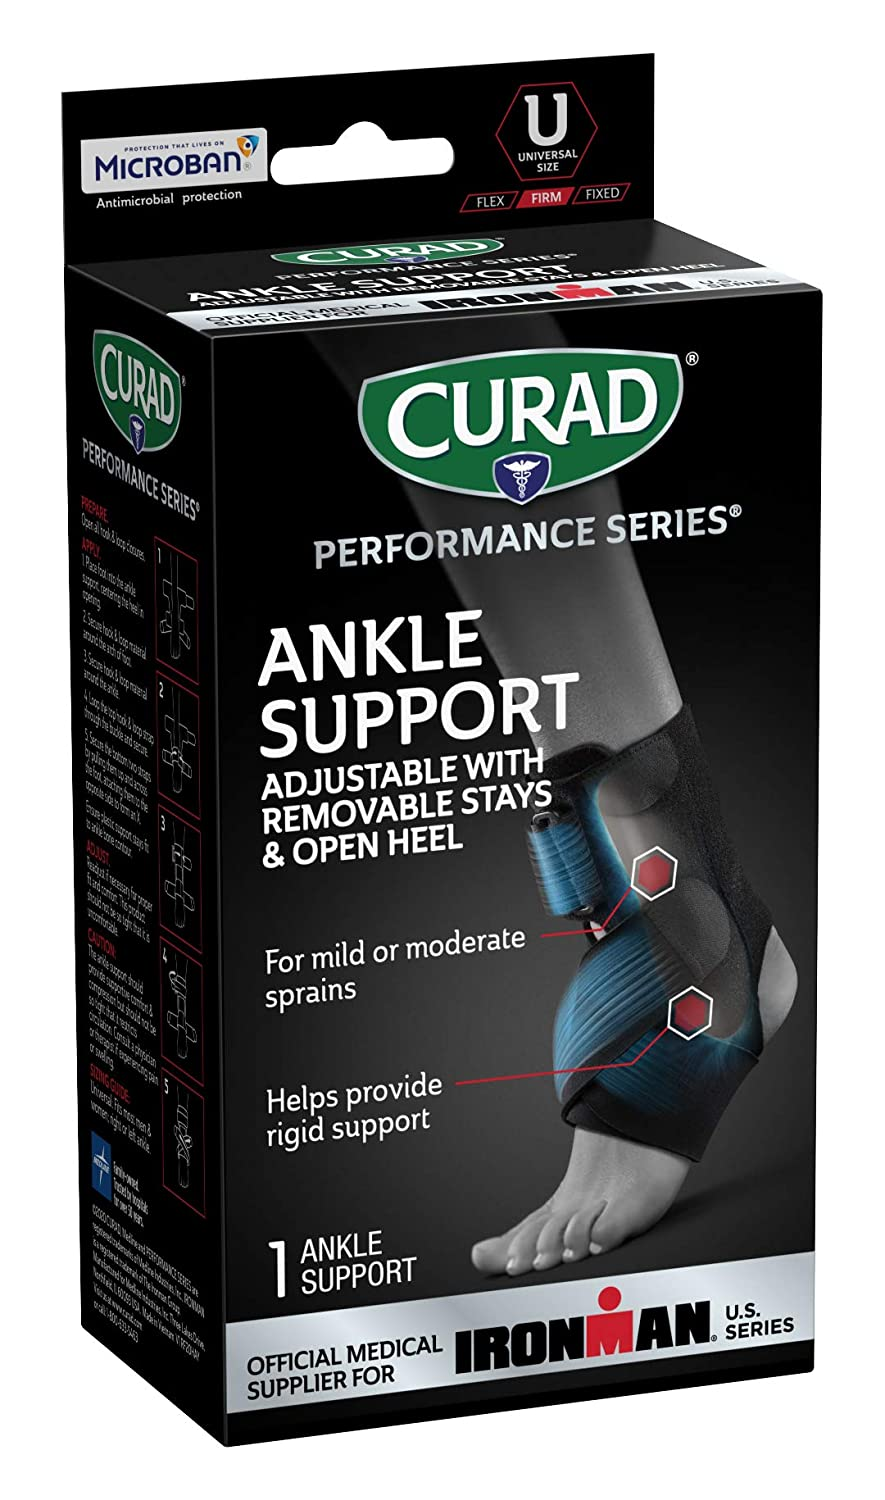 CURAD Performance Series Popular standard High quality Ironman Ankle St Support with Removable